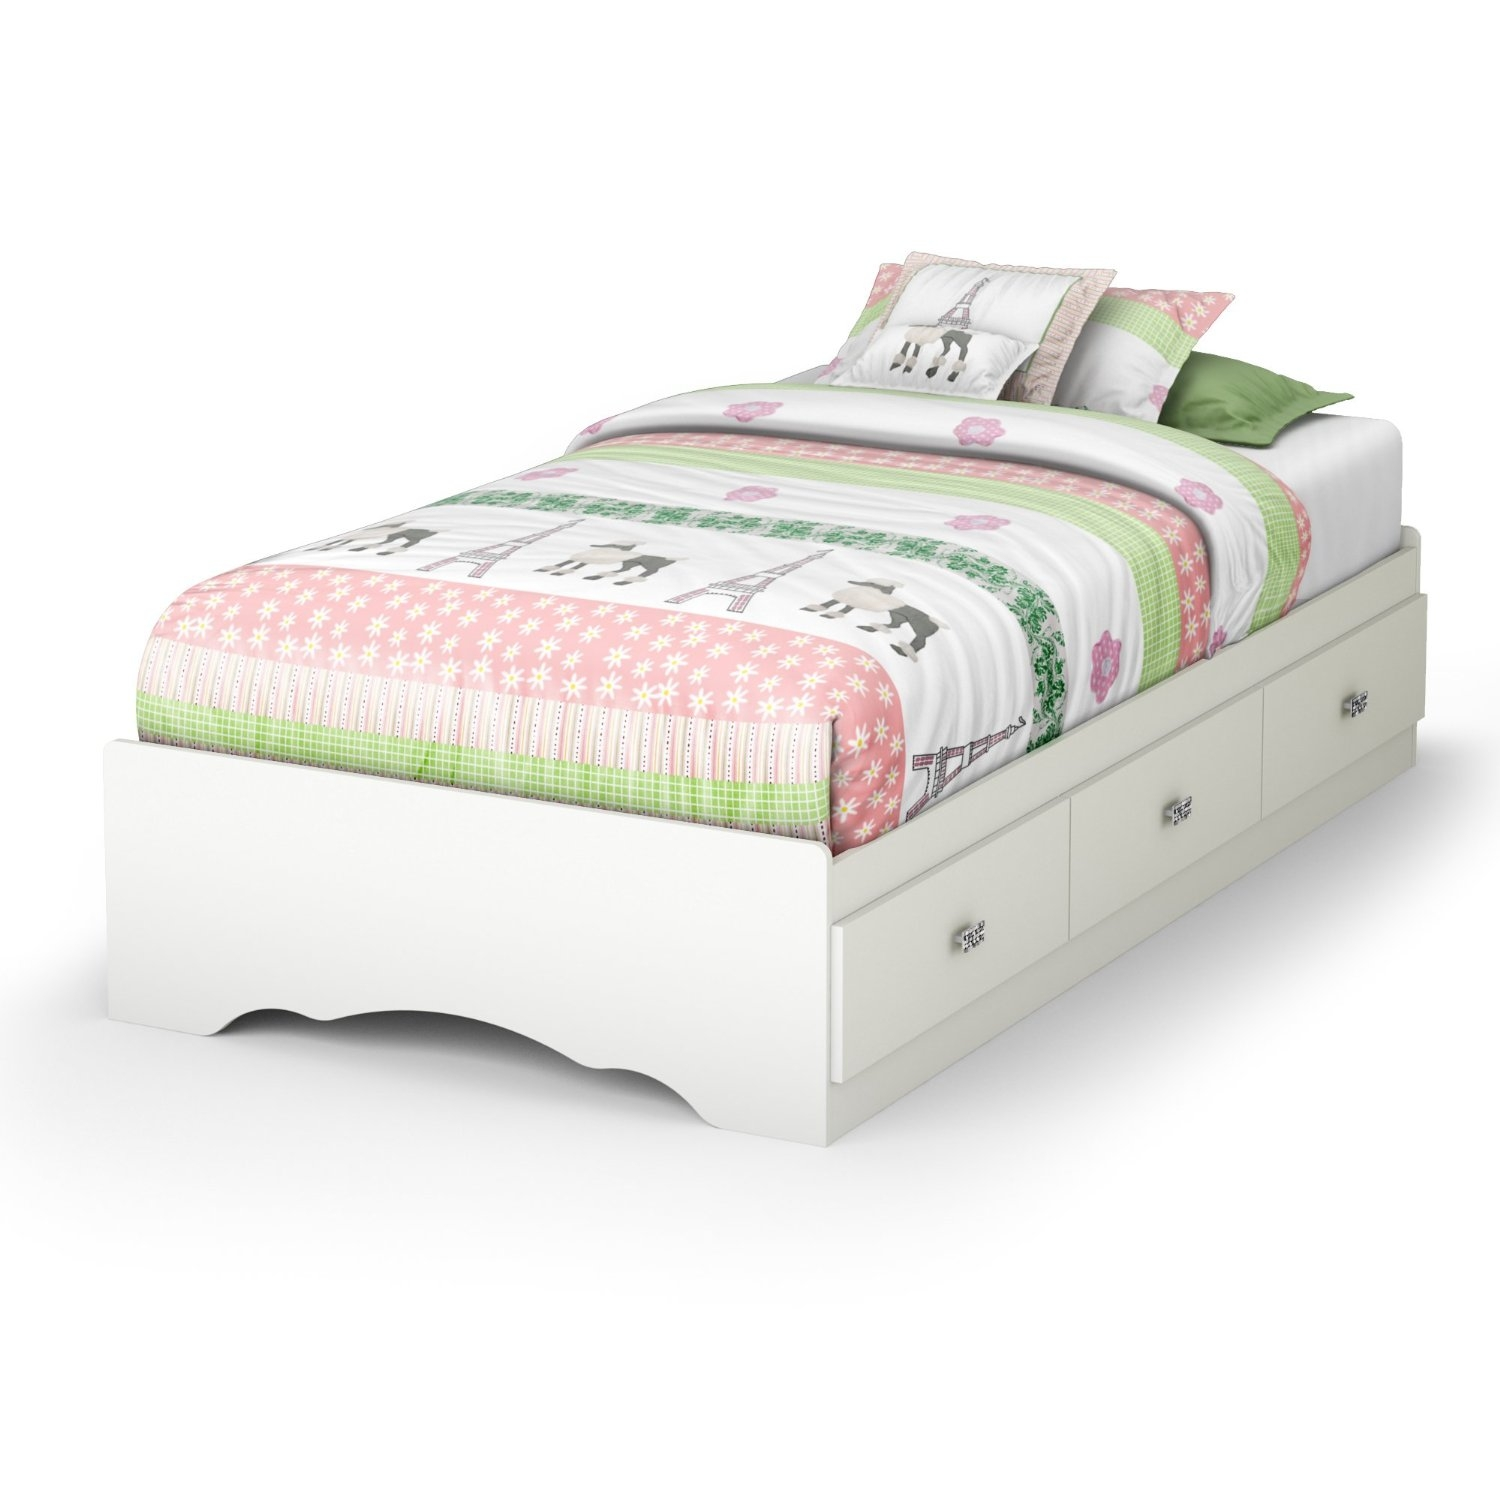 Twin size White Platform Bed Frame with 3 Storage Drawers, STCTMB17050 :  With its three drawers, this Twin size White Platform Bed Frame with 3 Storage Drawers is a great space-saving solution. Girls will love its jewel like chrome handles and decorative cut-outs. It can also be attached to the Tiara Twin 39-inch headboard for even more storage options. It is equipped with polymer glides that include dampers and catches for enhanced safety. Its weight capacity is 250-pound and no box spring is required. Bed is reversible therefore drawers can be placed on either side of the bed. The interior drawer dimensions are 22-1/2-inch wide by 17-3/4-inch front to back. It measures 76-1/4-inch long by 40-1/4-inch wide by 14-1/2-inch high. It is delivered in a box measuring 85-inch by 23-1/2-inch by 4-1/2-inch and weighs 126-pound. Made of non-toxic recycled CARB2 compliant laminated particle panels. Complete assembly required by 2 adults. Tools are not included. 5-year limited warranty. Made in Canada.